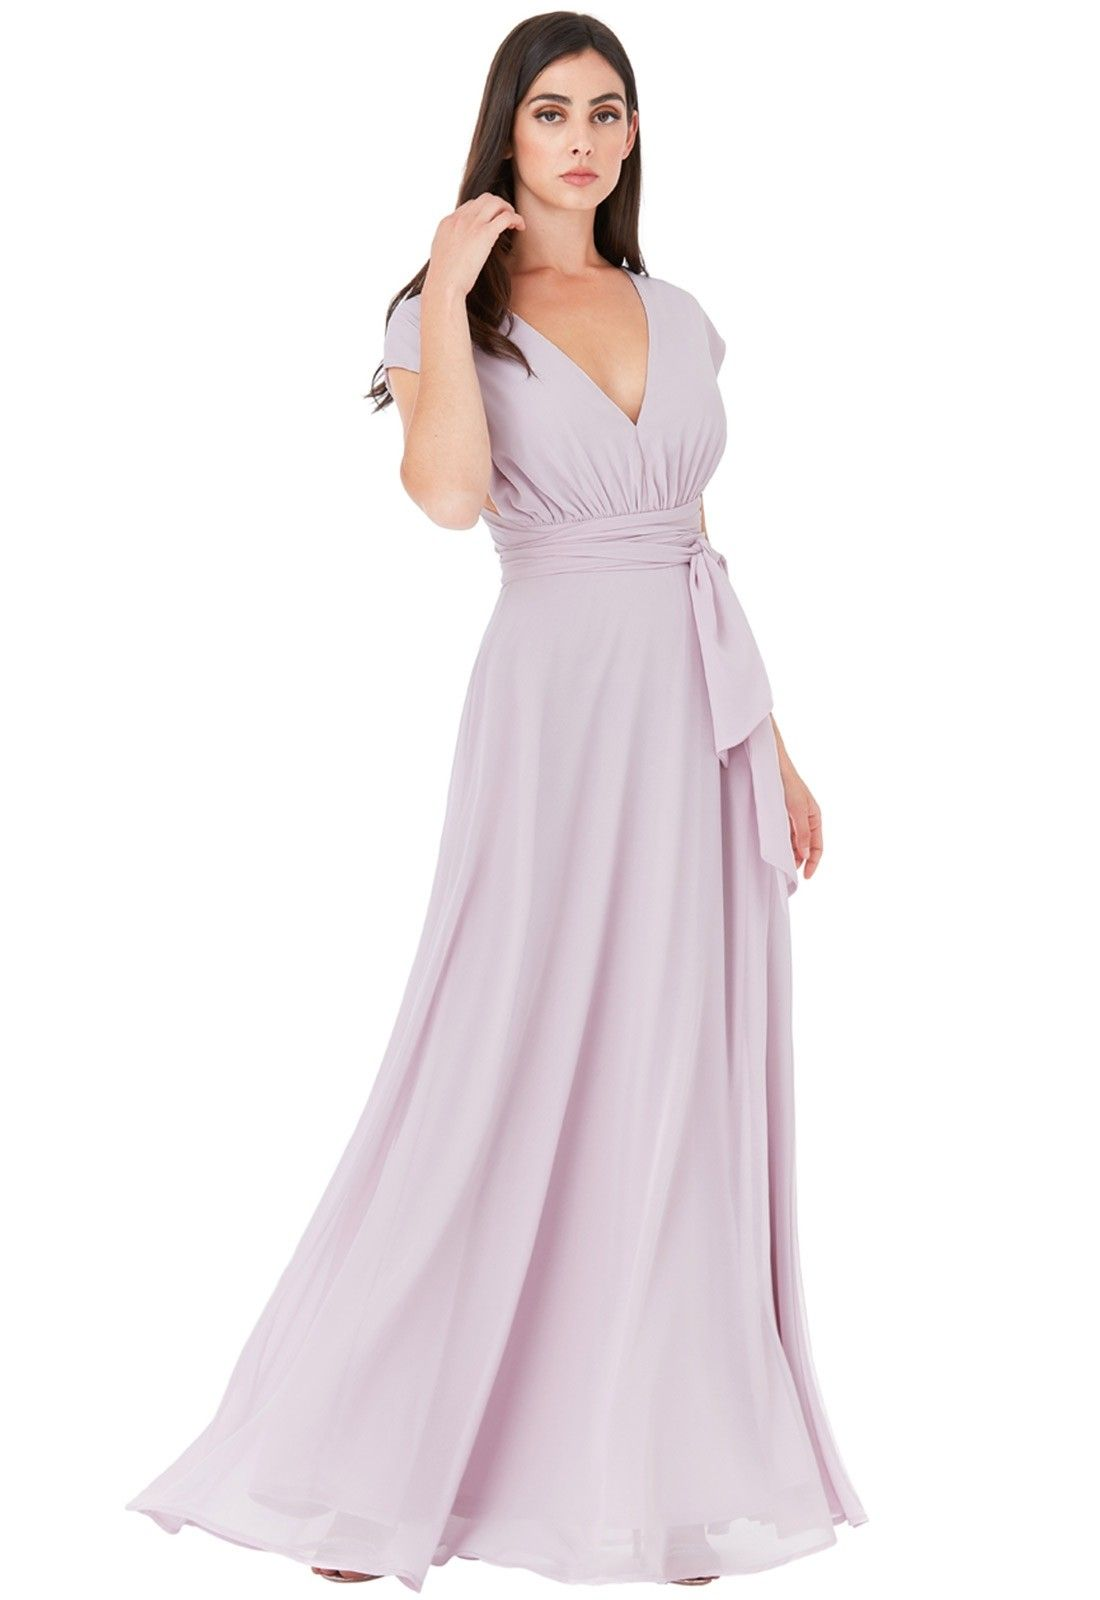 3a5666da04 Goddiva Multiway Lavender Chiffon Maxi Dress - Mother of the Bride Dresses  - Weddings